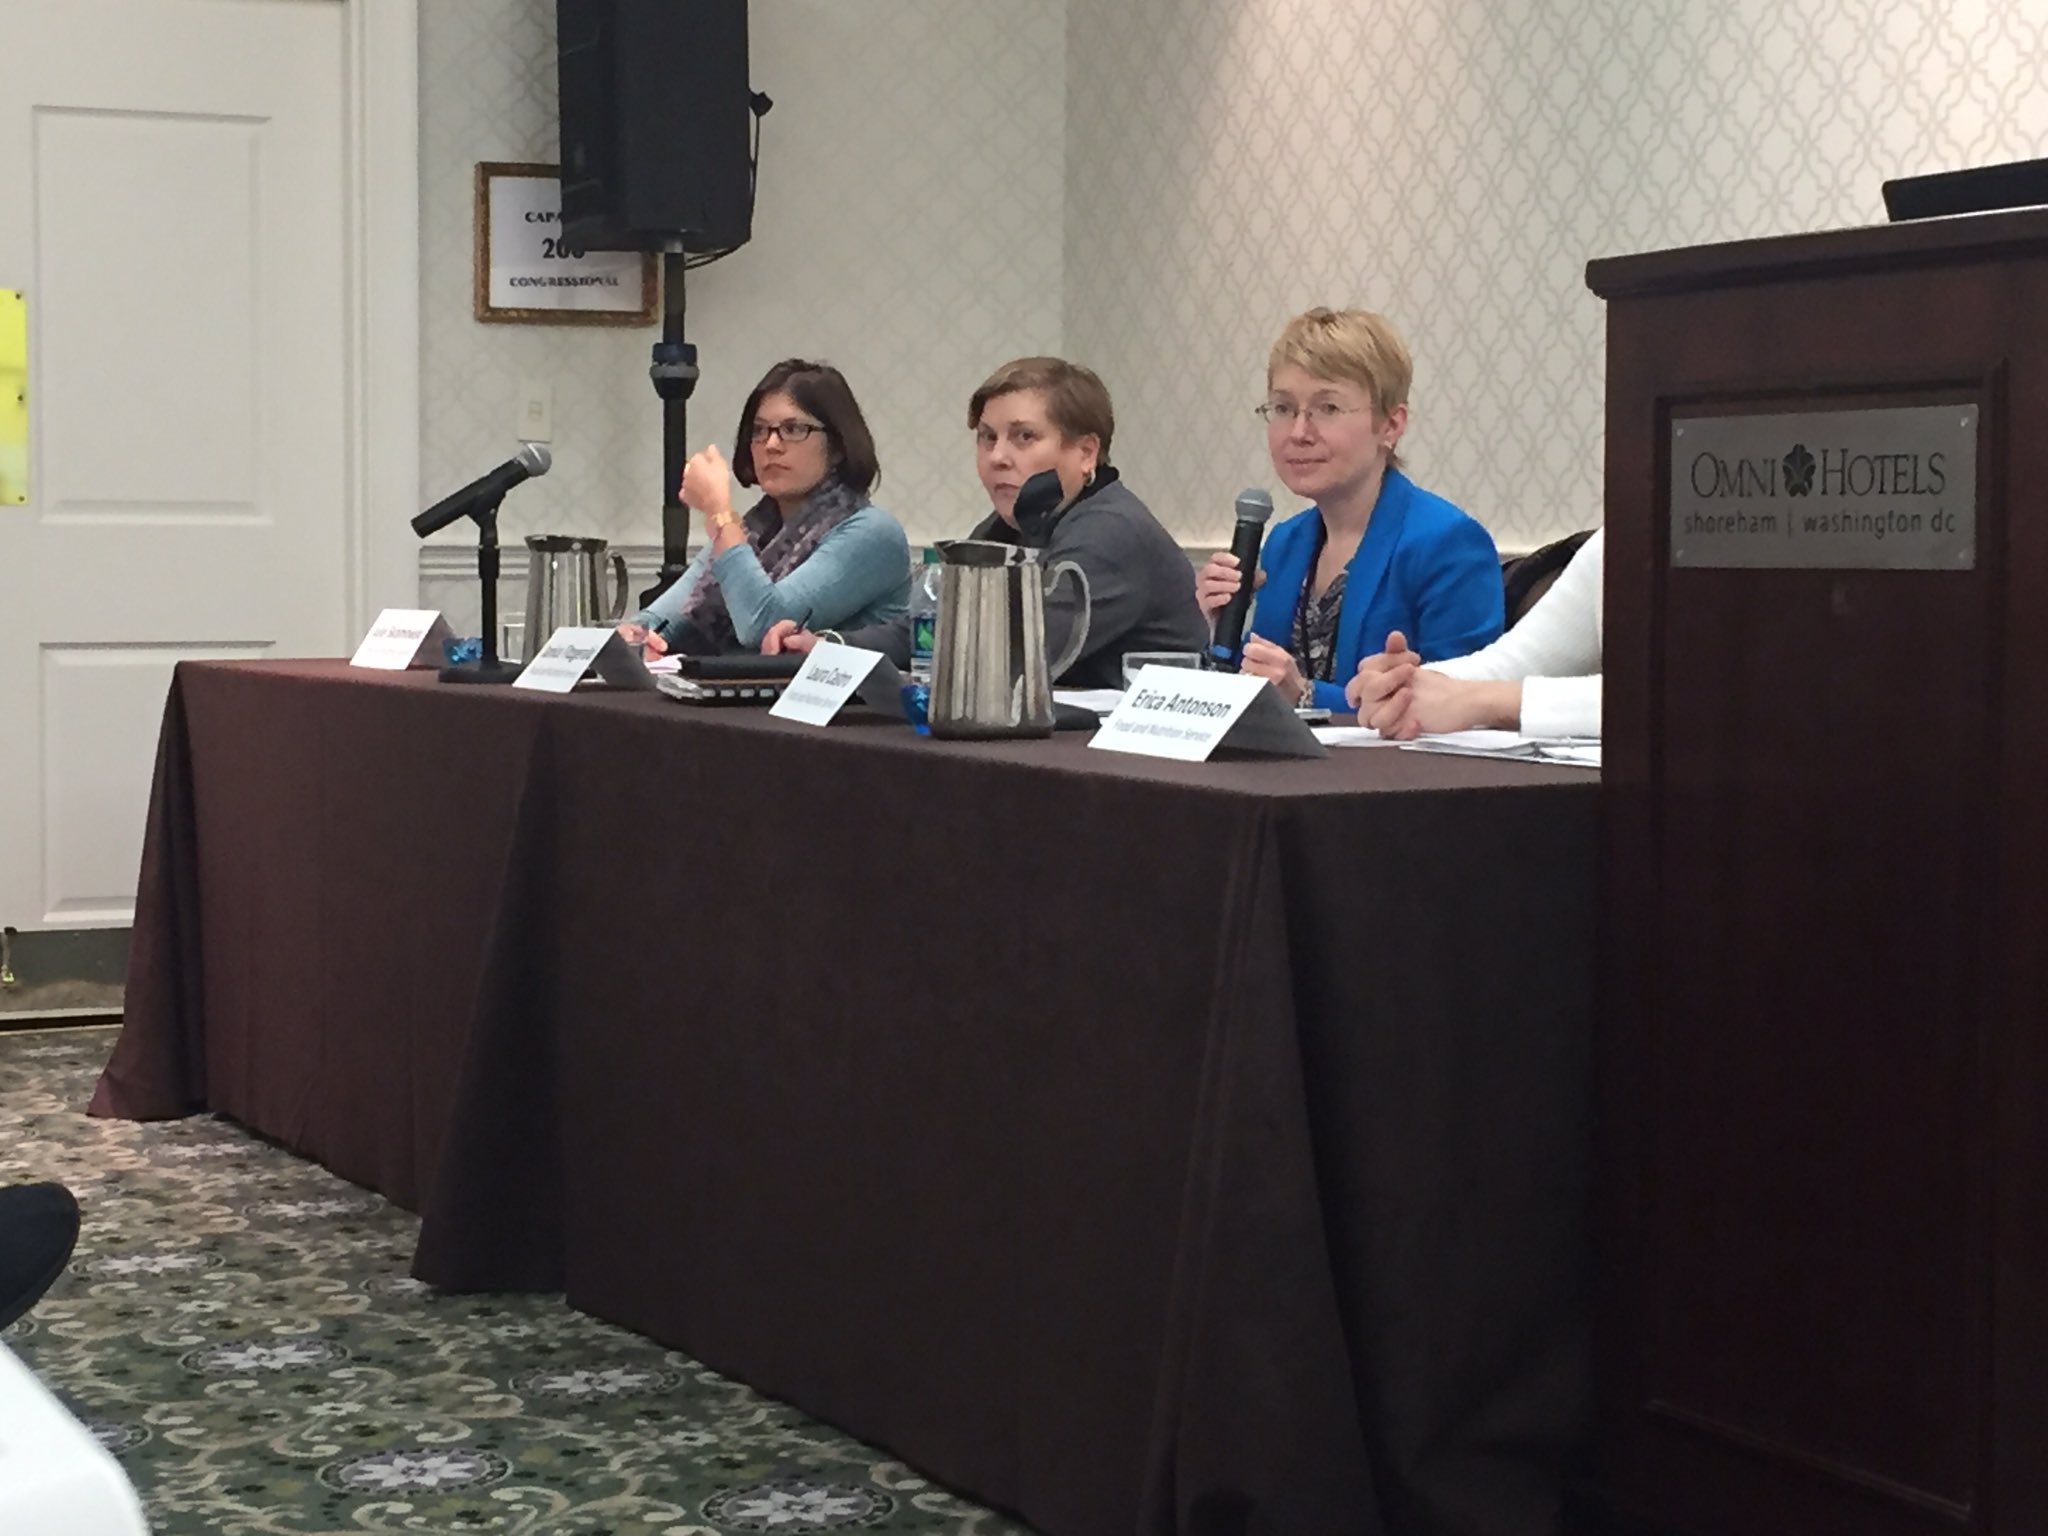 Thanks to @USDANutrition for briefing us on commodity food programs utilized by our food banks and clients. #hungerpc17  @FeedingAmerica https://t.co/KnTtMnQvWk